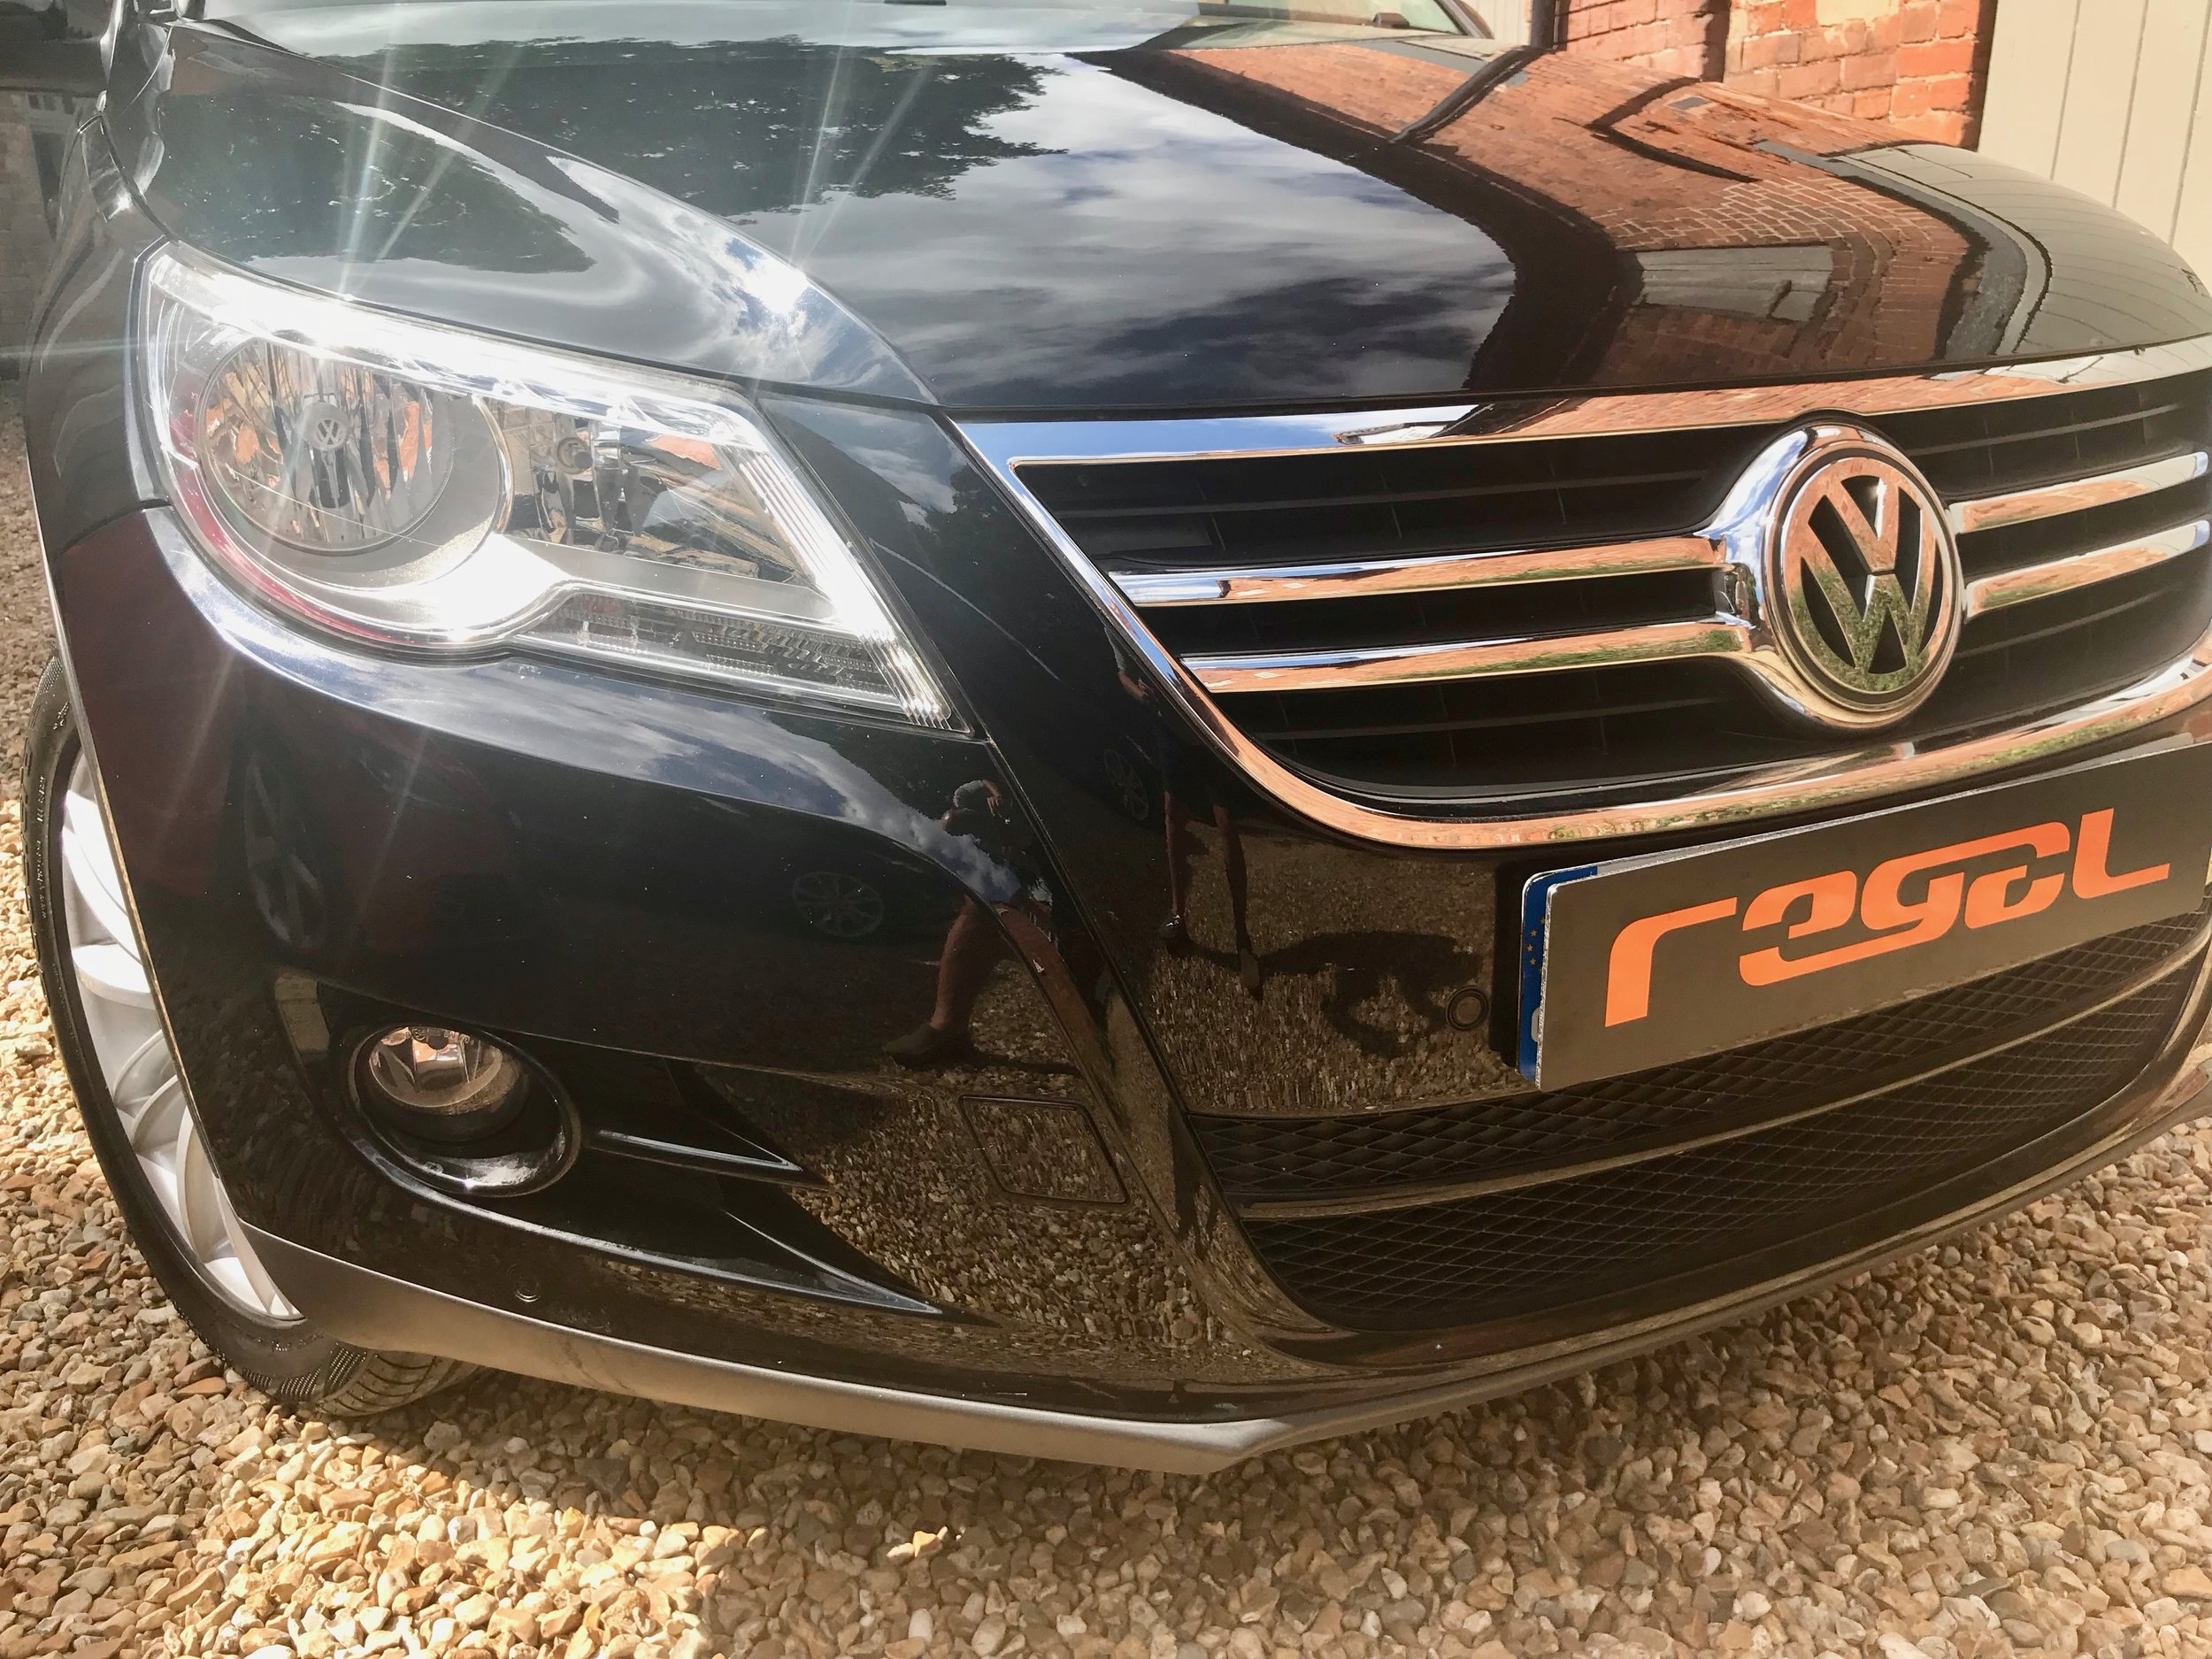 volkswagen-tiguan-4motion-used-car-forsale-regalmotion41.jpeg